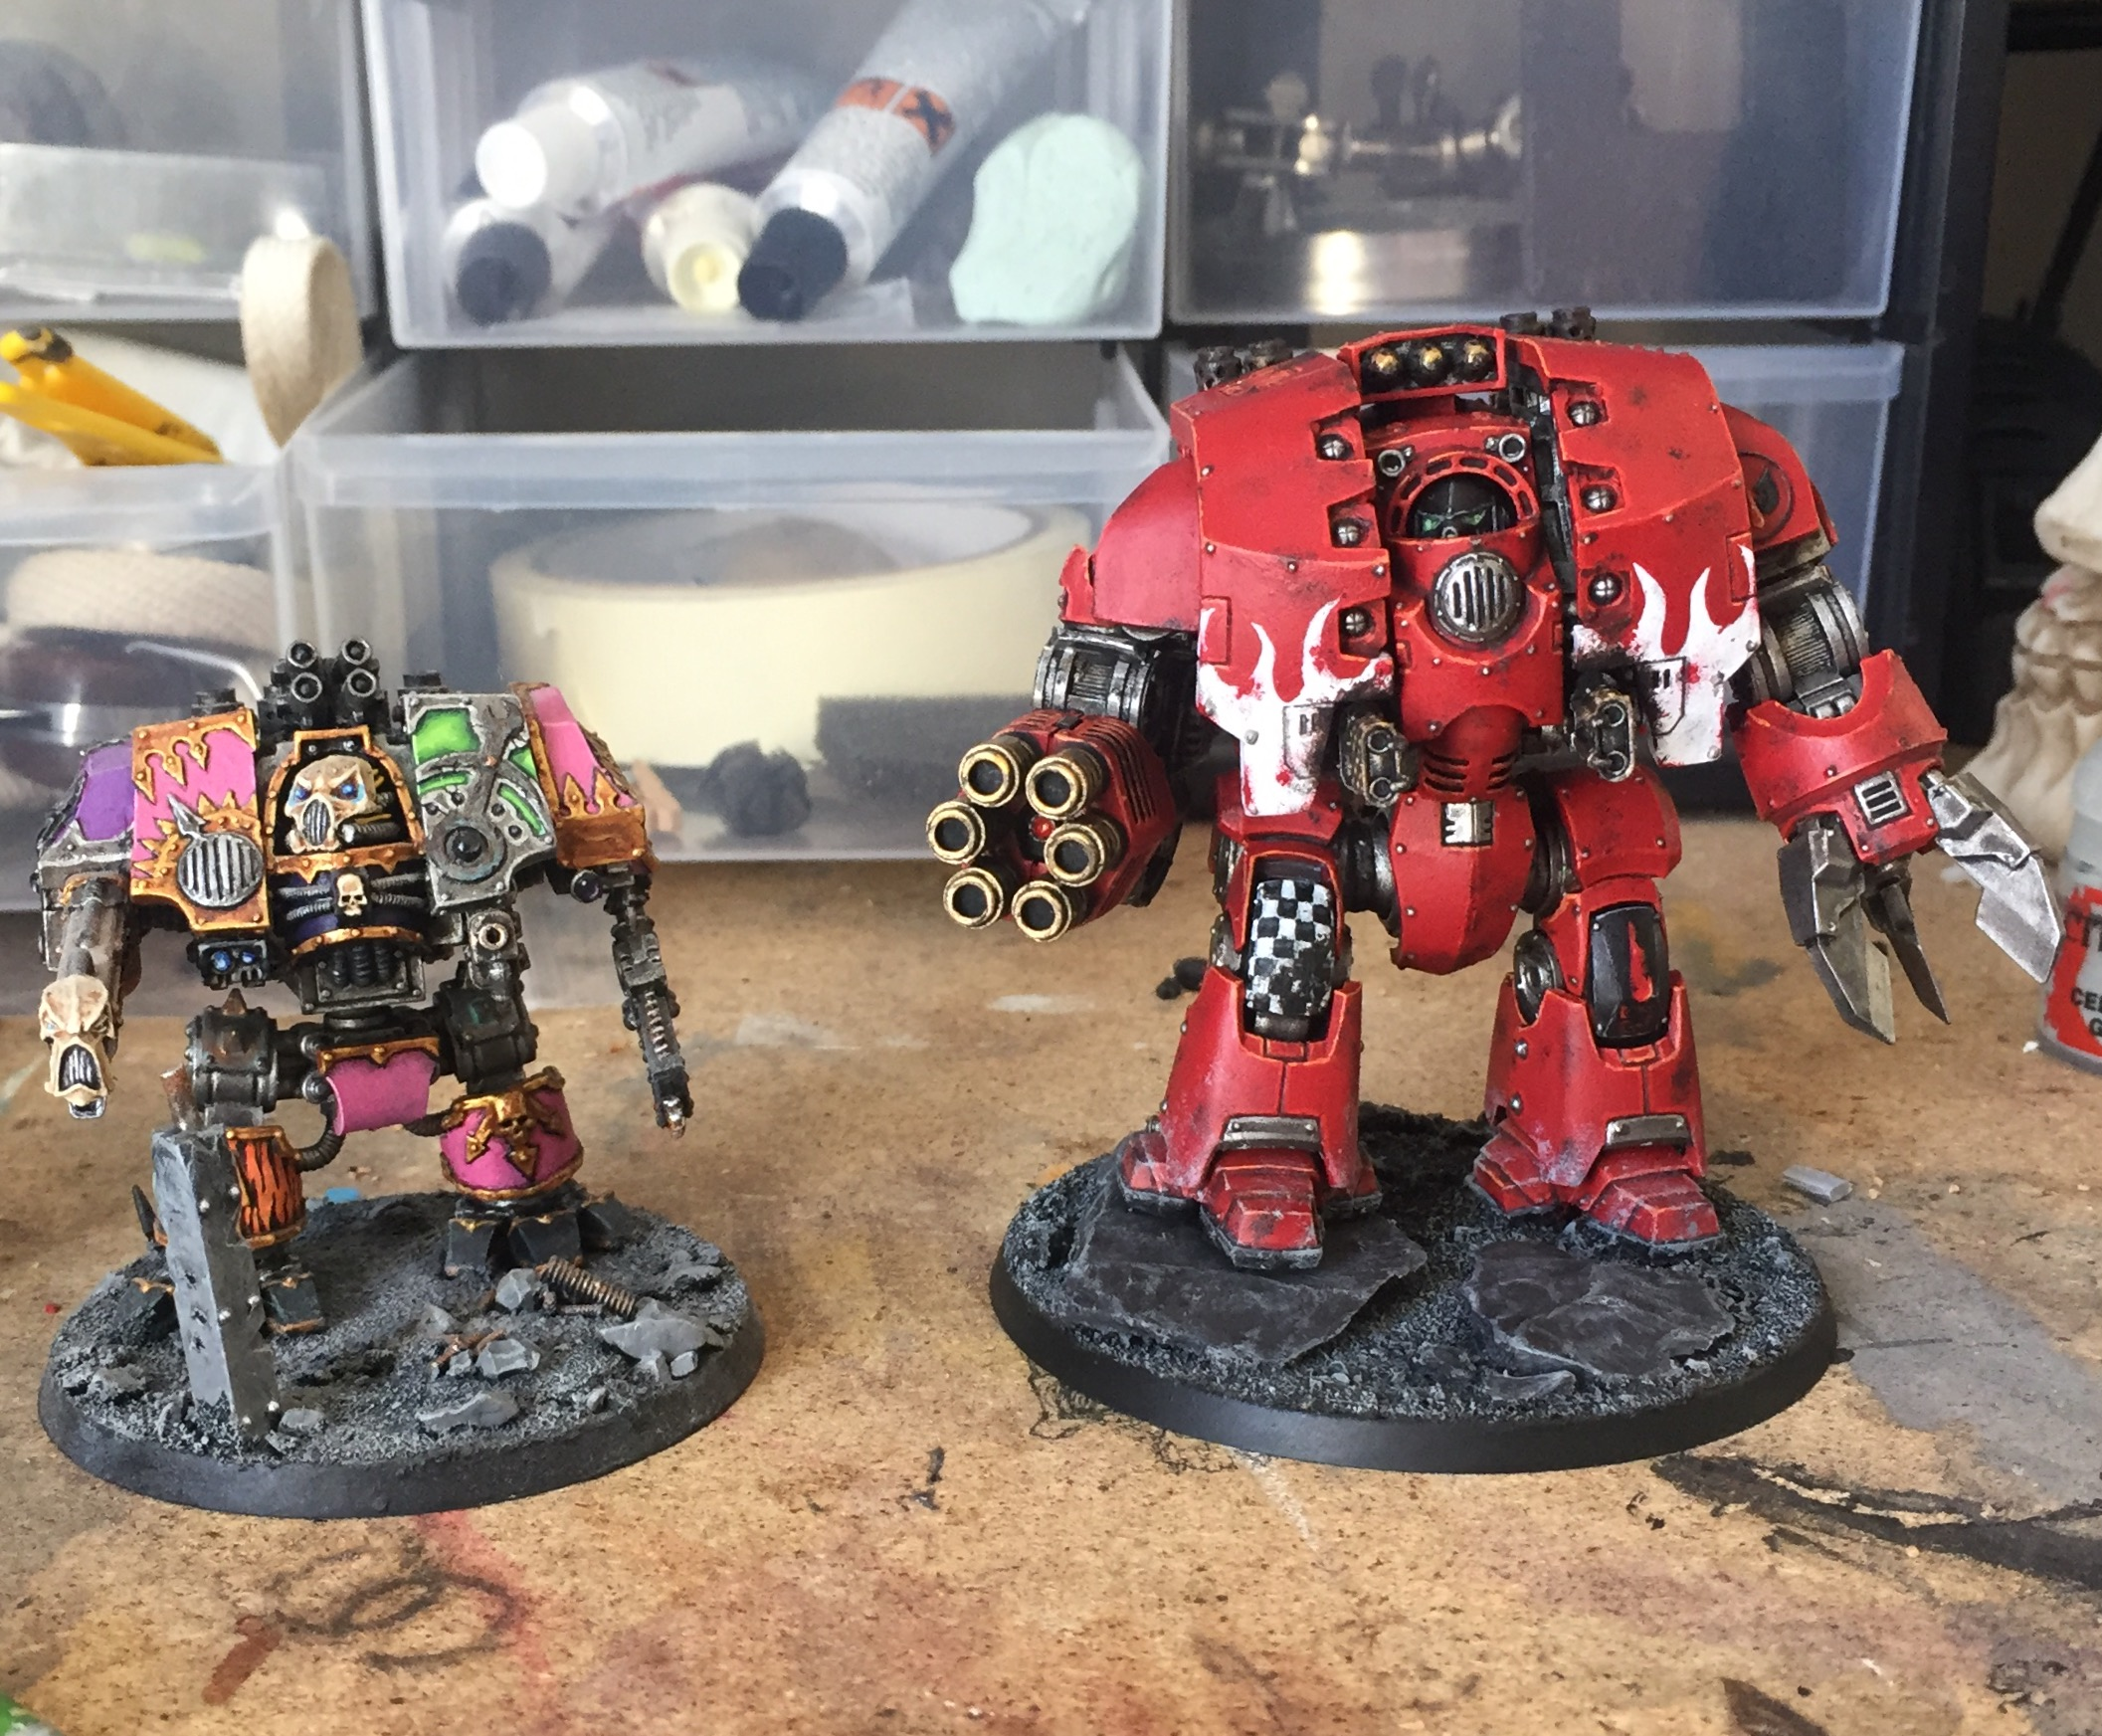 siege dreadnought size comparison